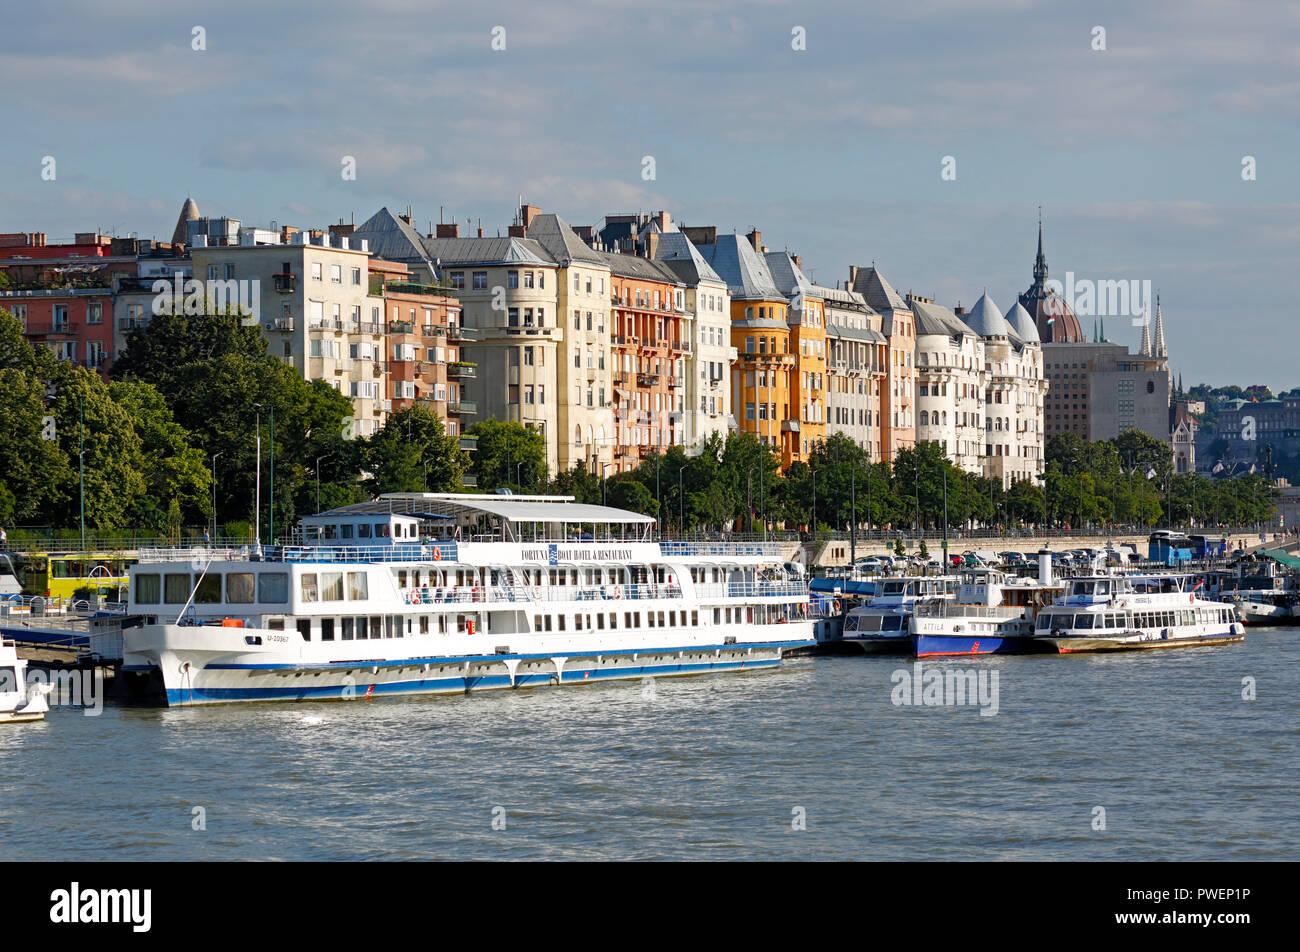 Hungary, Central Hungary, Budapest, Danube, Capital City, Danube bank of Pest, Danube landscape, business houses and residential buildings, shipping pier, ships, river navigation, UNESCO World Heritage Site Stock Photo